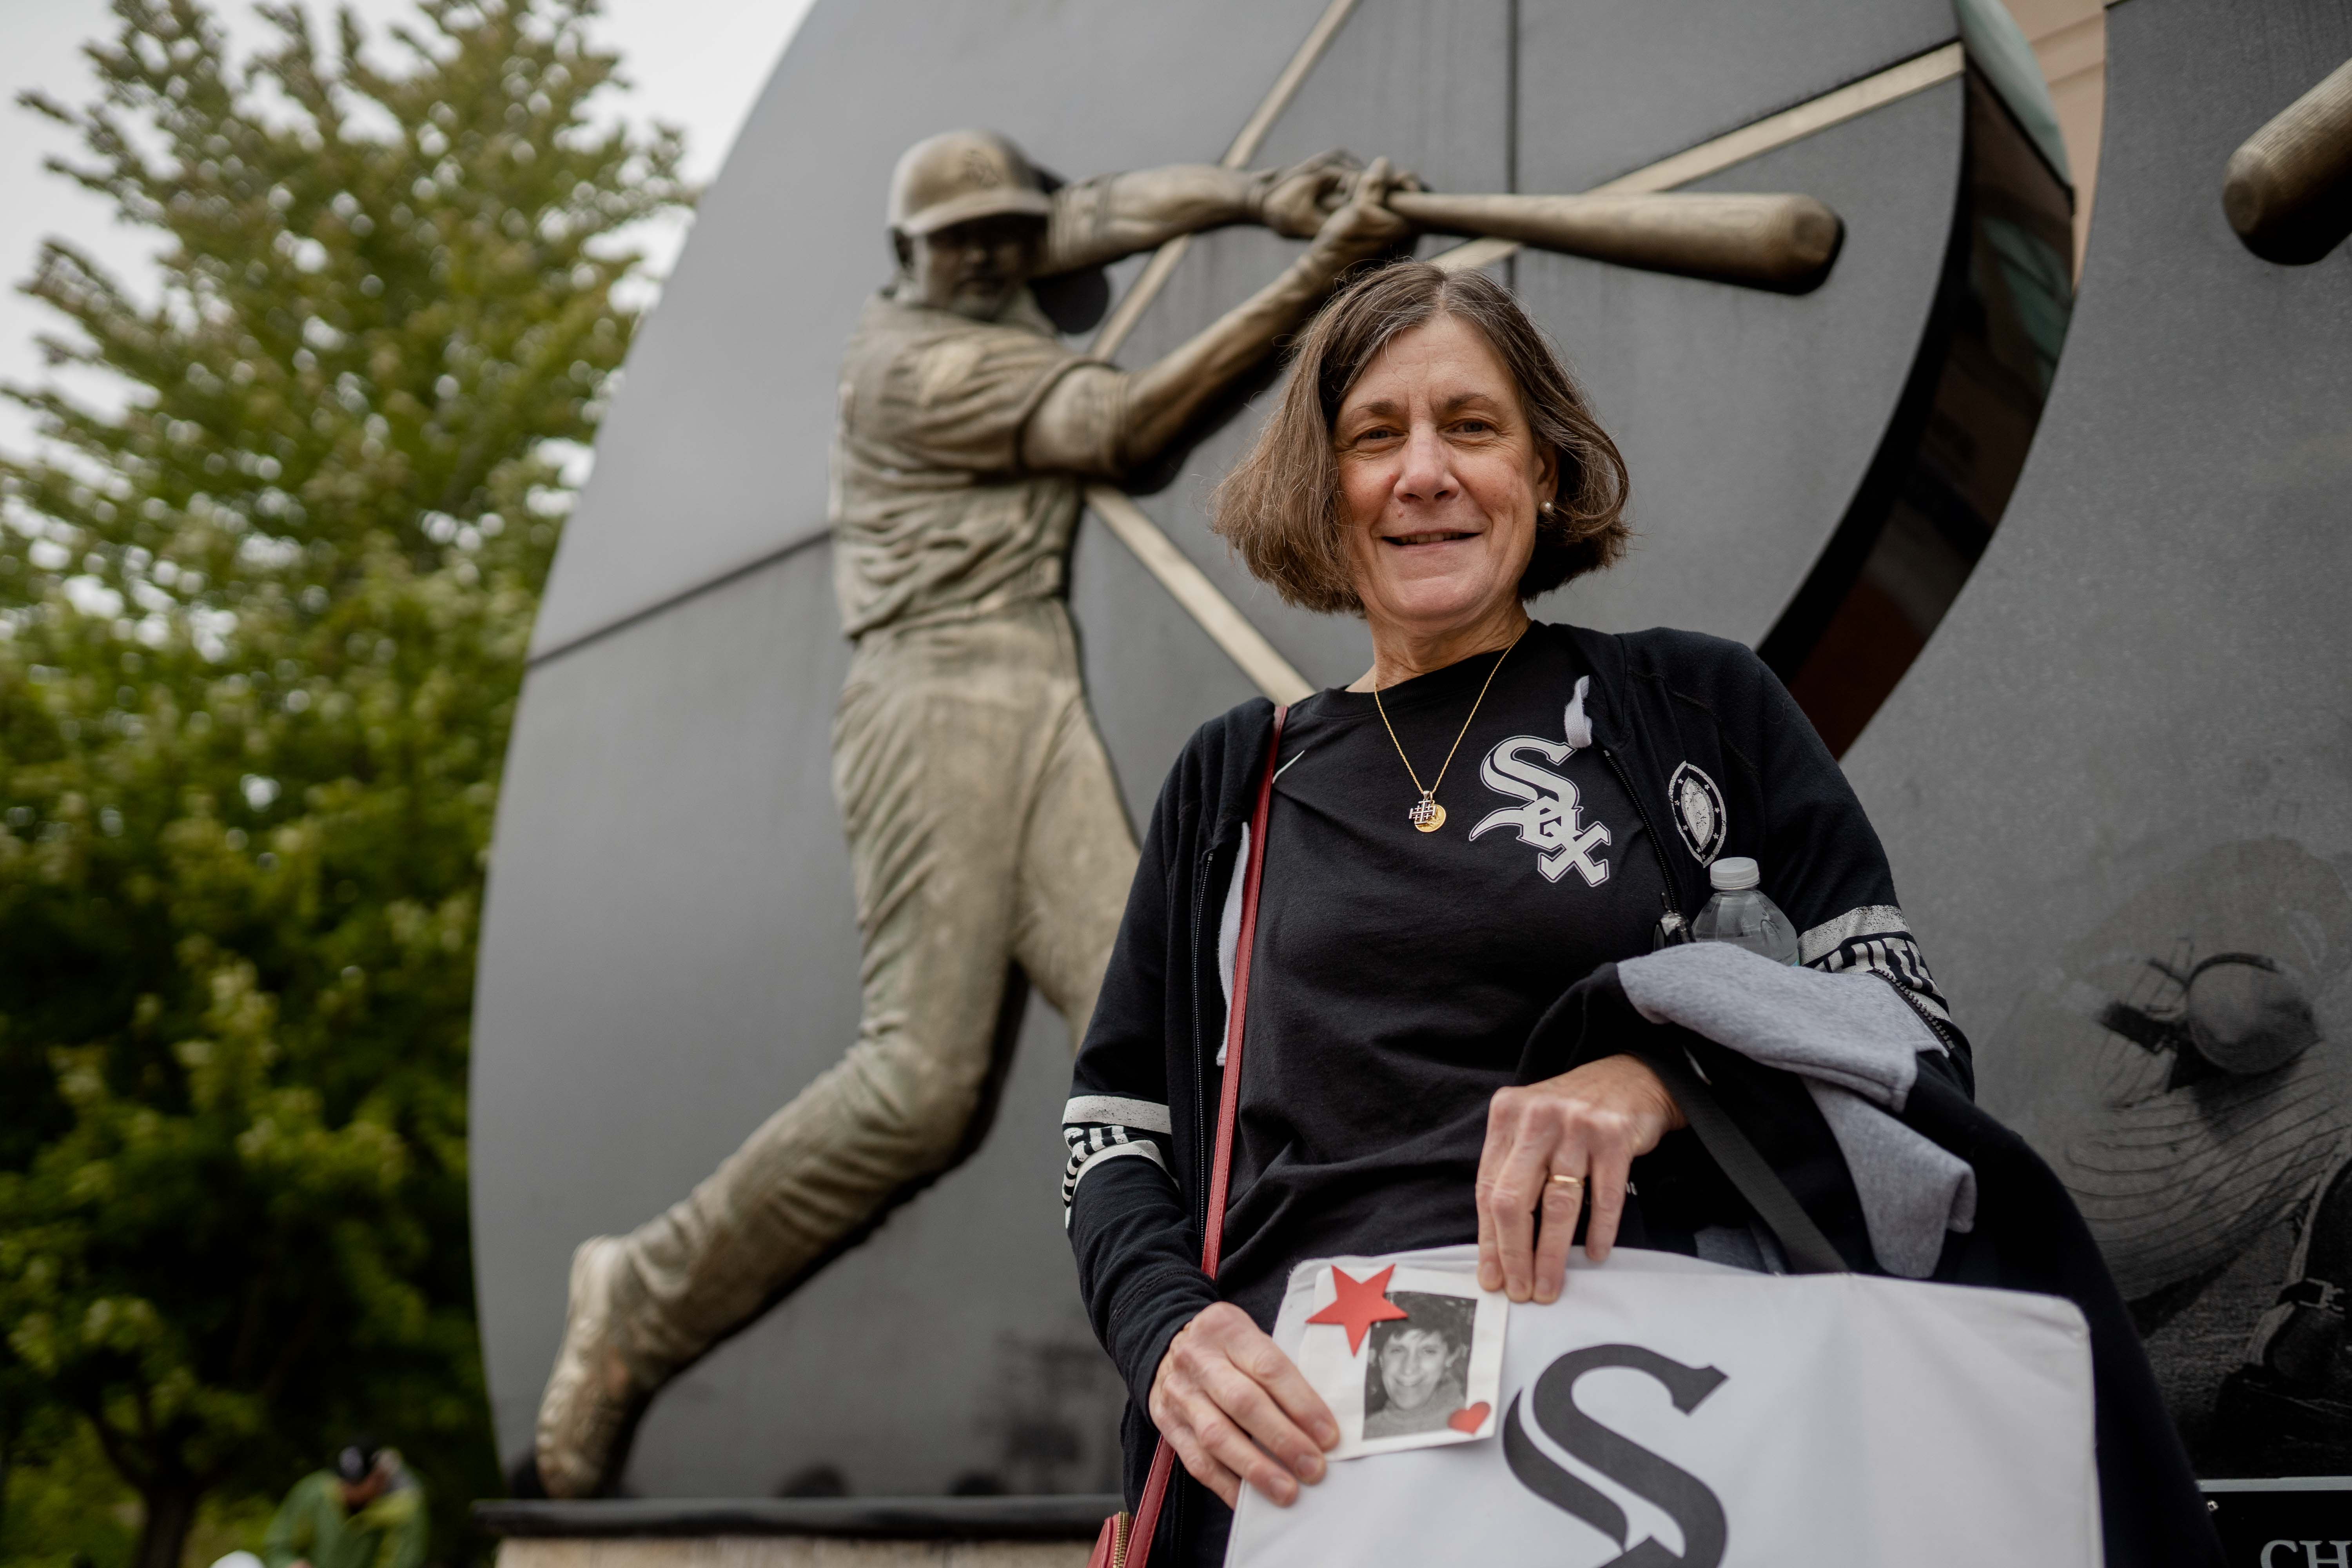 White Sox fan Sharon Bresnahan, who lost her twin sister Sheryl, poses for a photo outside the Guaranteed Rate Field on Oct. 23, 2021.